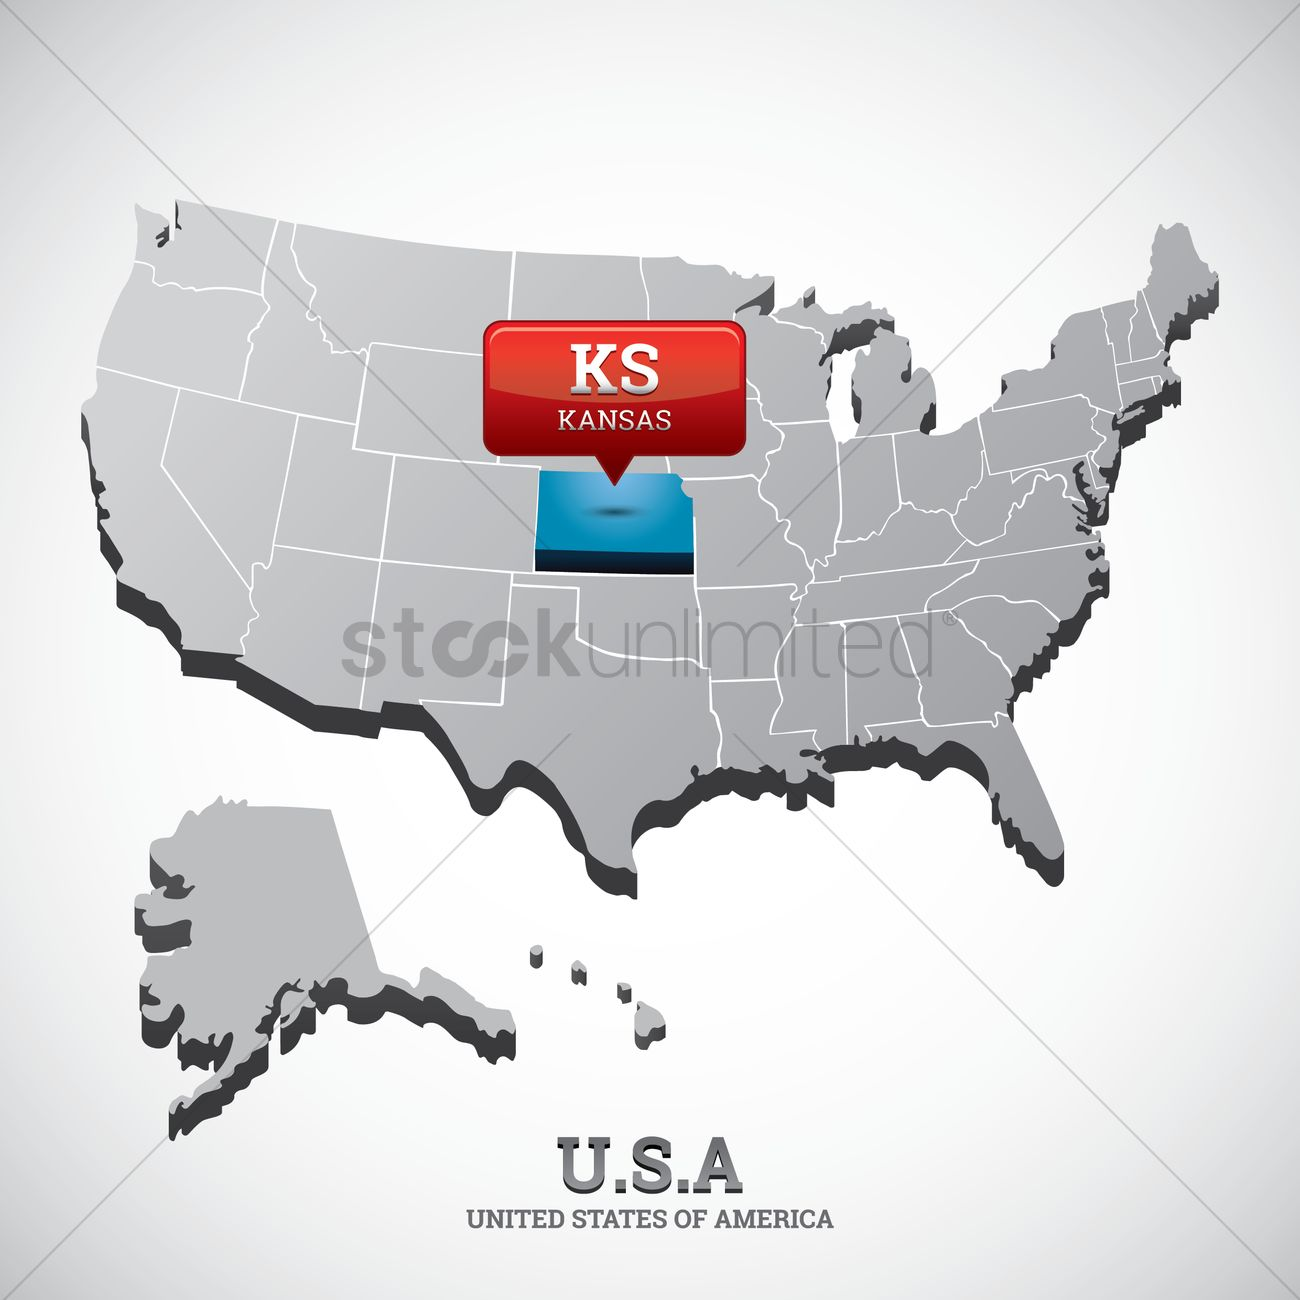 Kansas State On Map on south carolina on map, wisconsin on map, minnesota on map, lsu on map, alabama on map, notre dame on map, colorado on map, kansas highway, yale on map, tulsa on map, marquette on map, kansas state highlights, ks road map, texas a&m on map, kansas flag, virginia on map, california on map, georgia on map, washington on map, gonzaga on map,